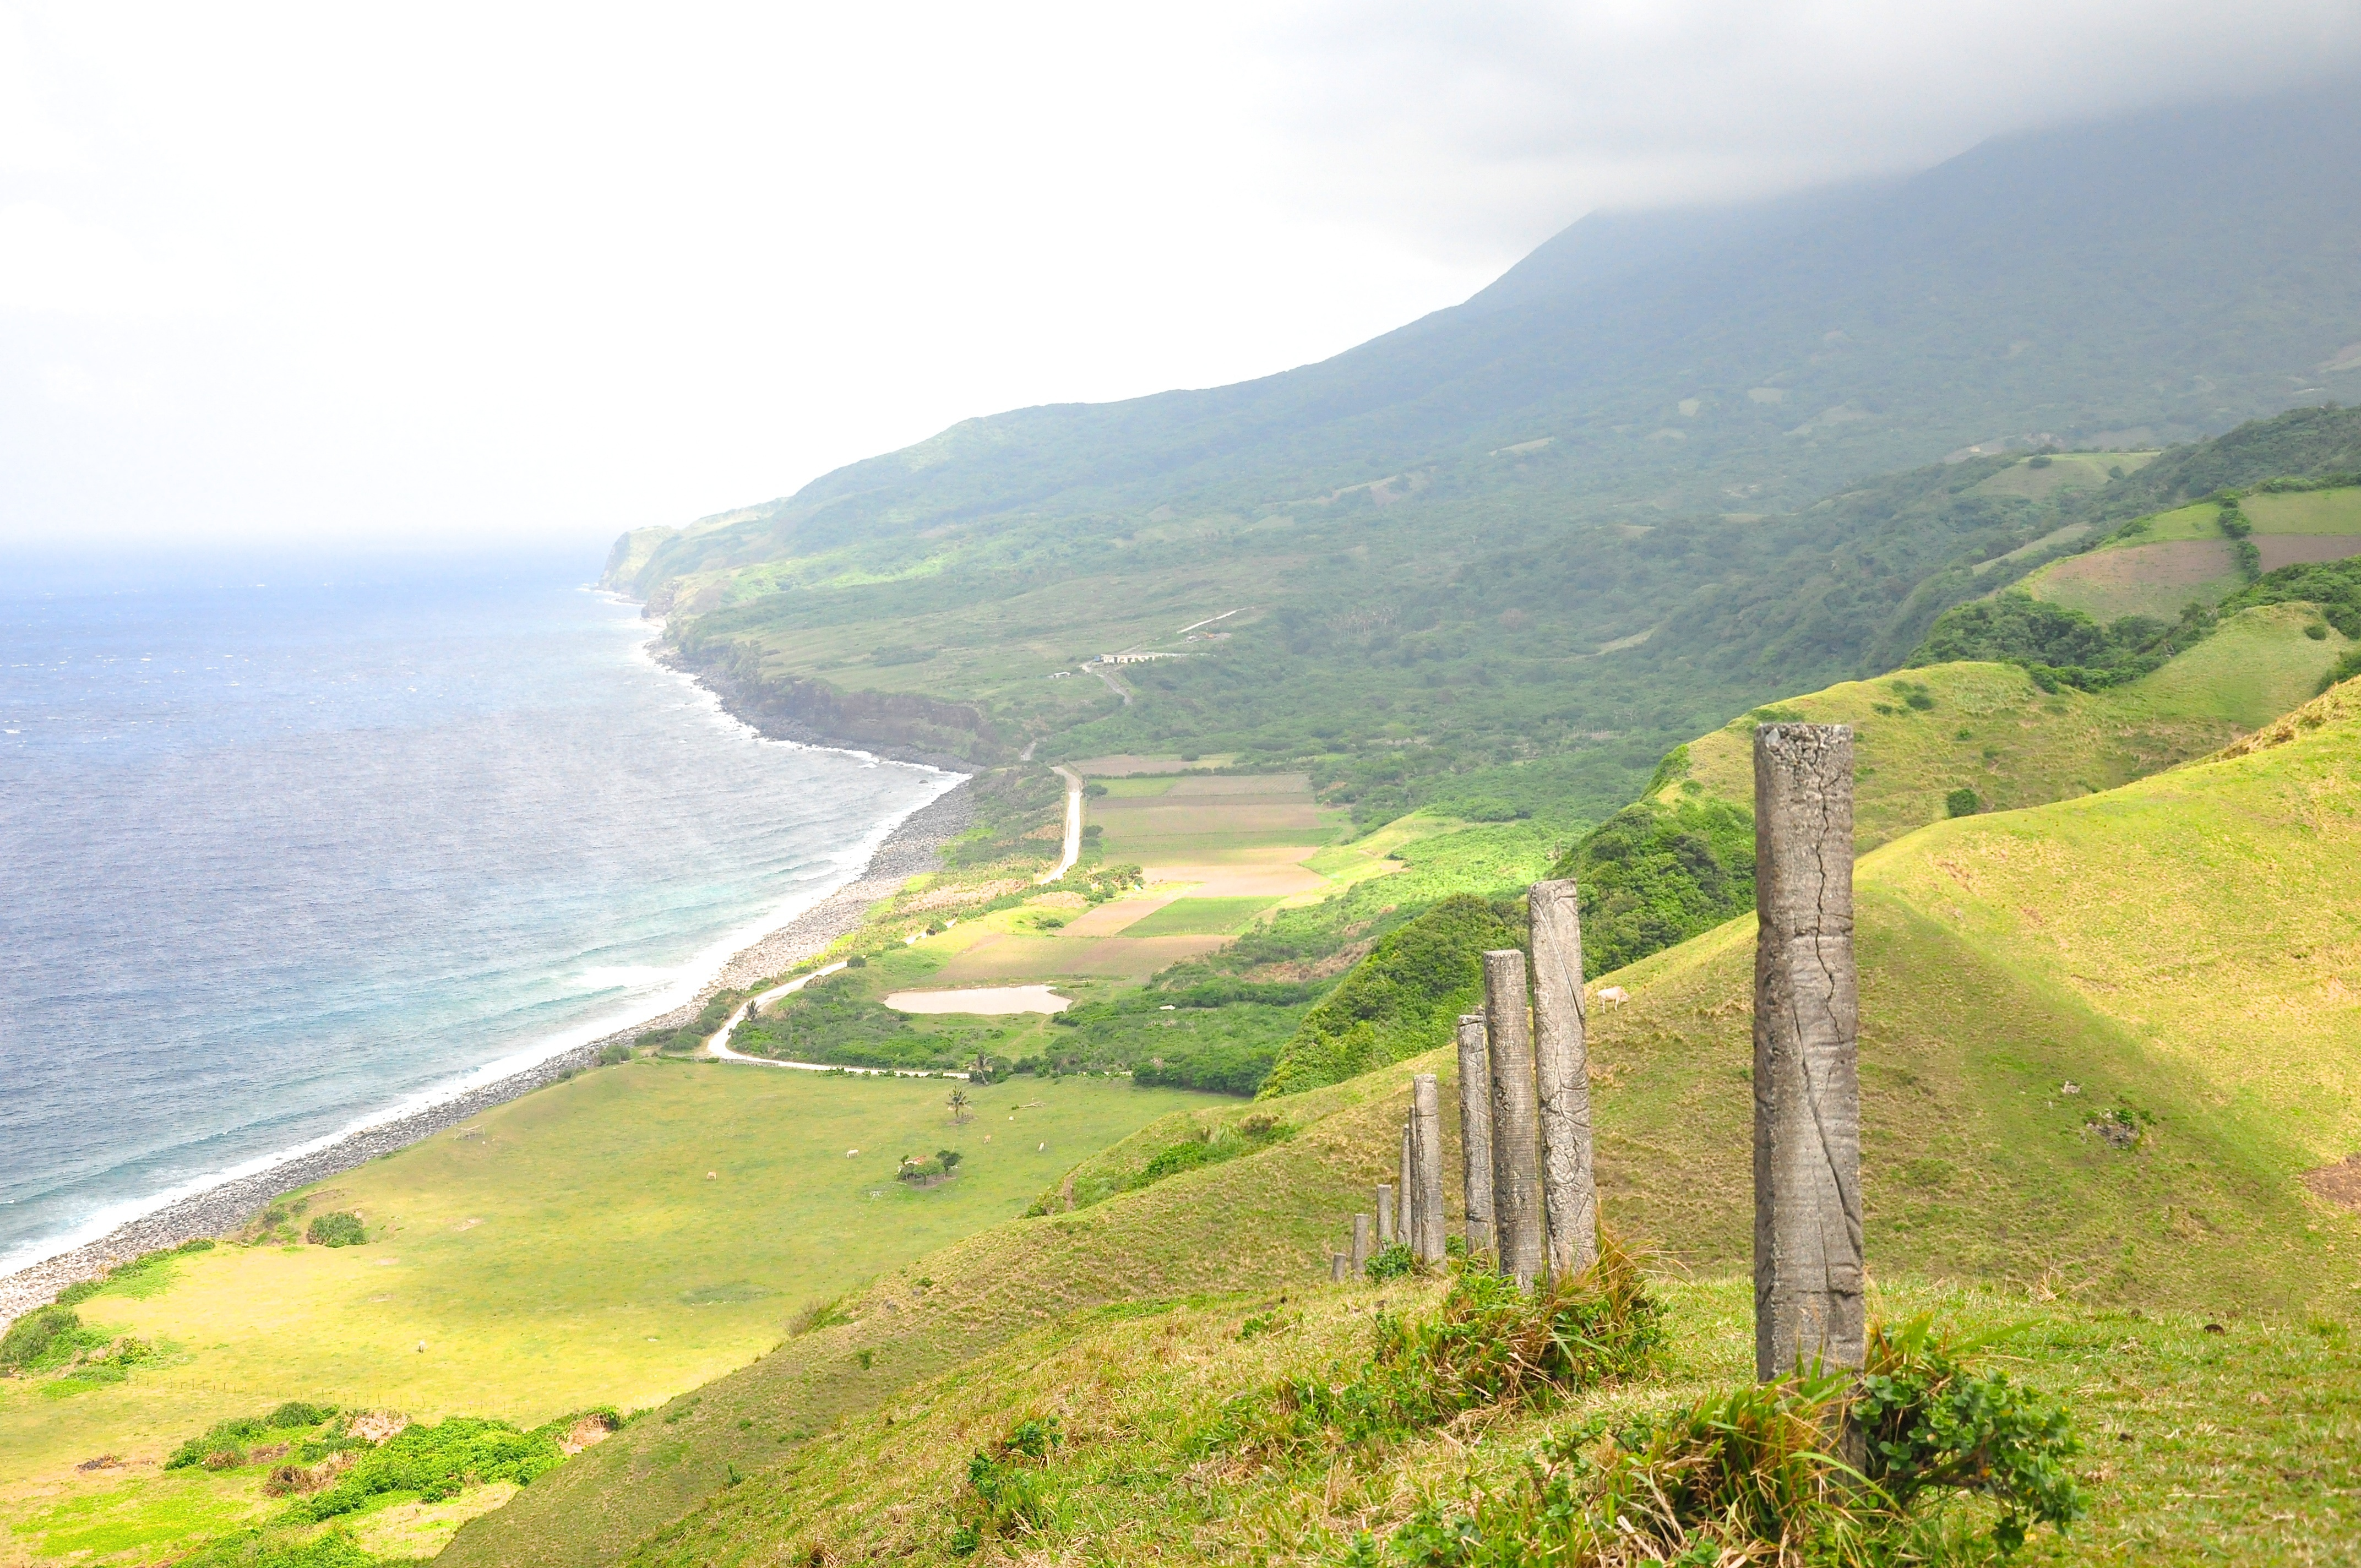 Vayang Rolling Hills Batan Island, 15 Must Visit Spots in Batanes | of trips and travel notes